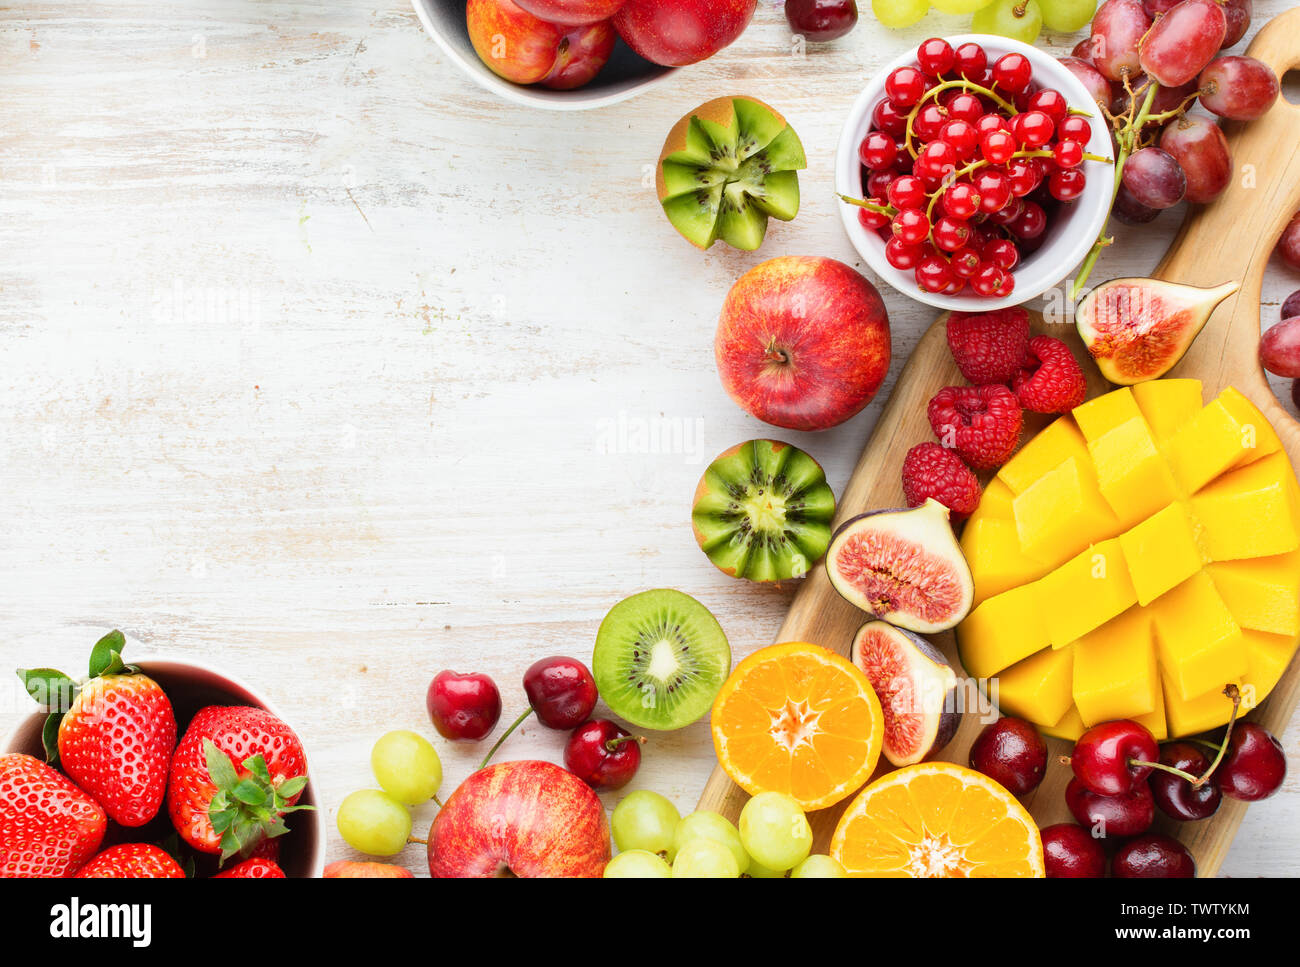 Colorful fruits background, cut mango, strawberries raspberries oranges plums apples kiwis grapes blueberries cherries, on white table, copy space, to - Stock Image